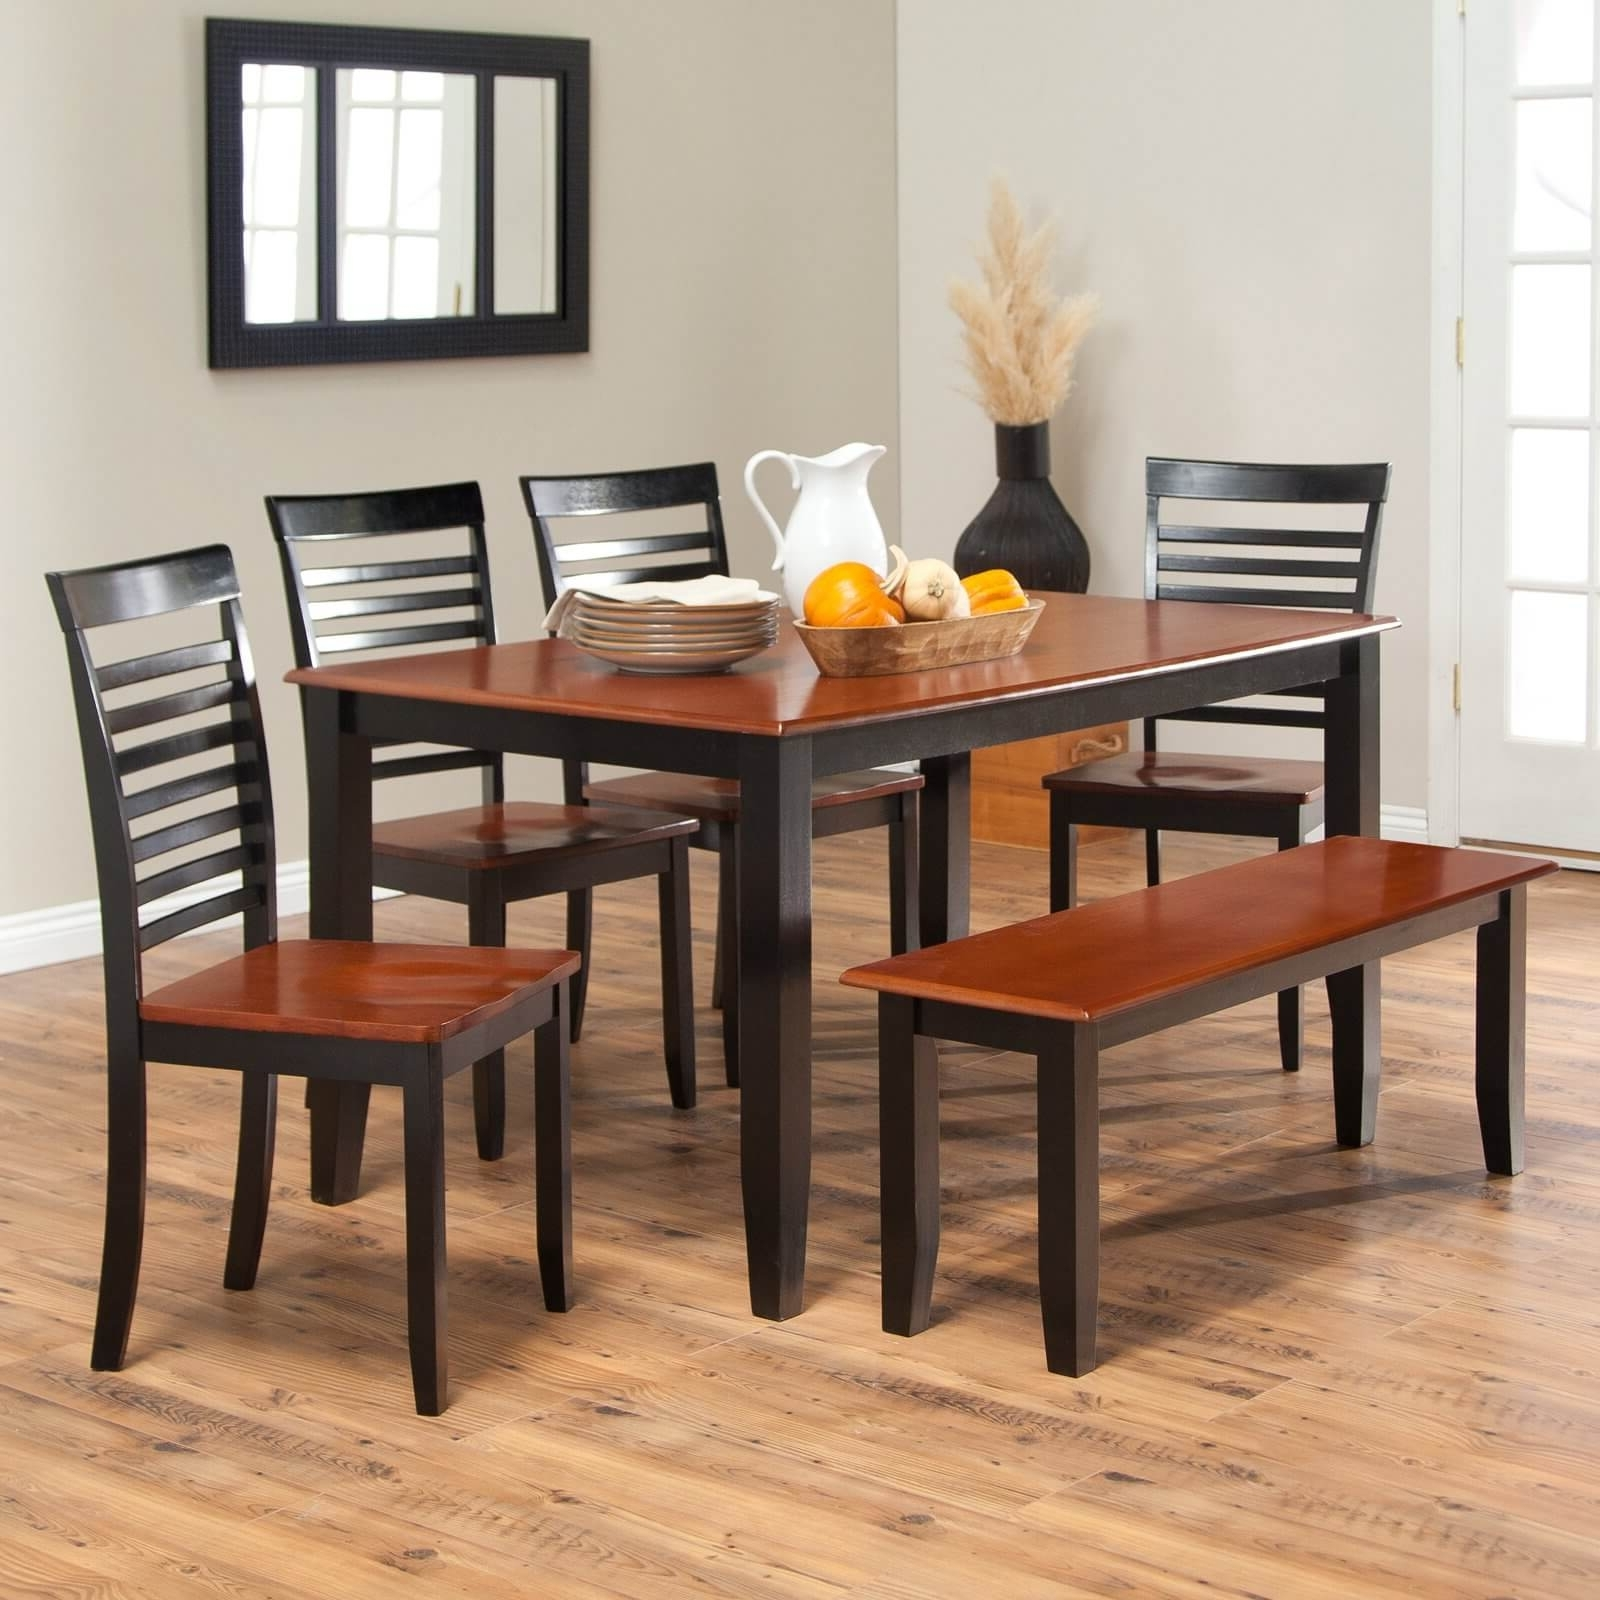 Well Liked 26 Dining Room Sets (Big And Small) With Bench Seating (2018) With 6 Seat Dining Table Sets (View 17 of 25)